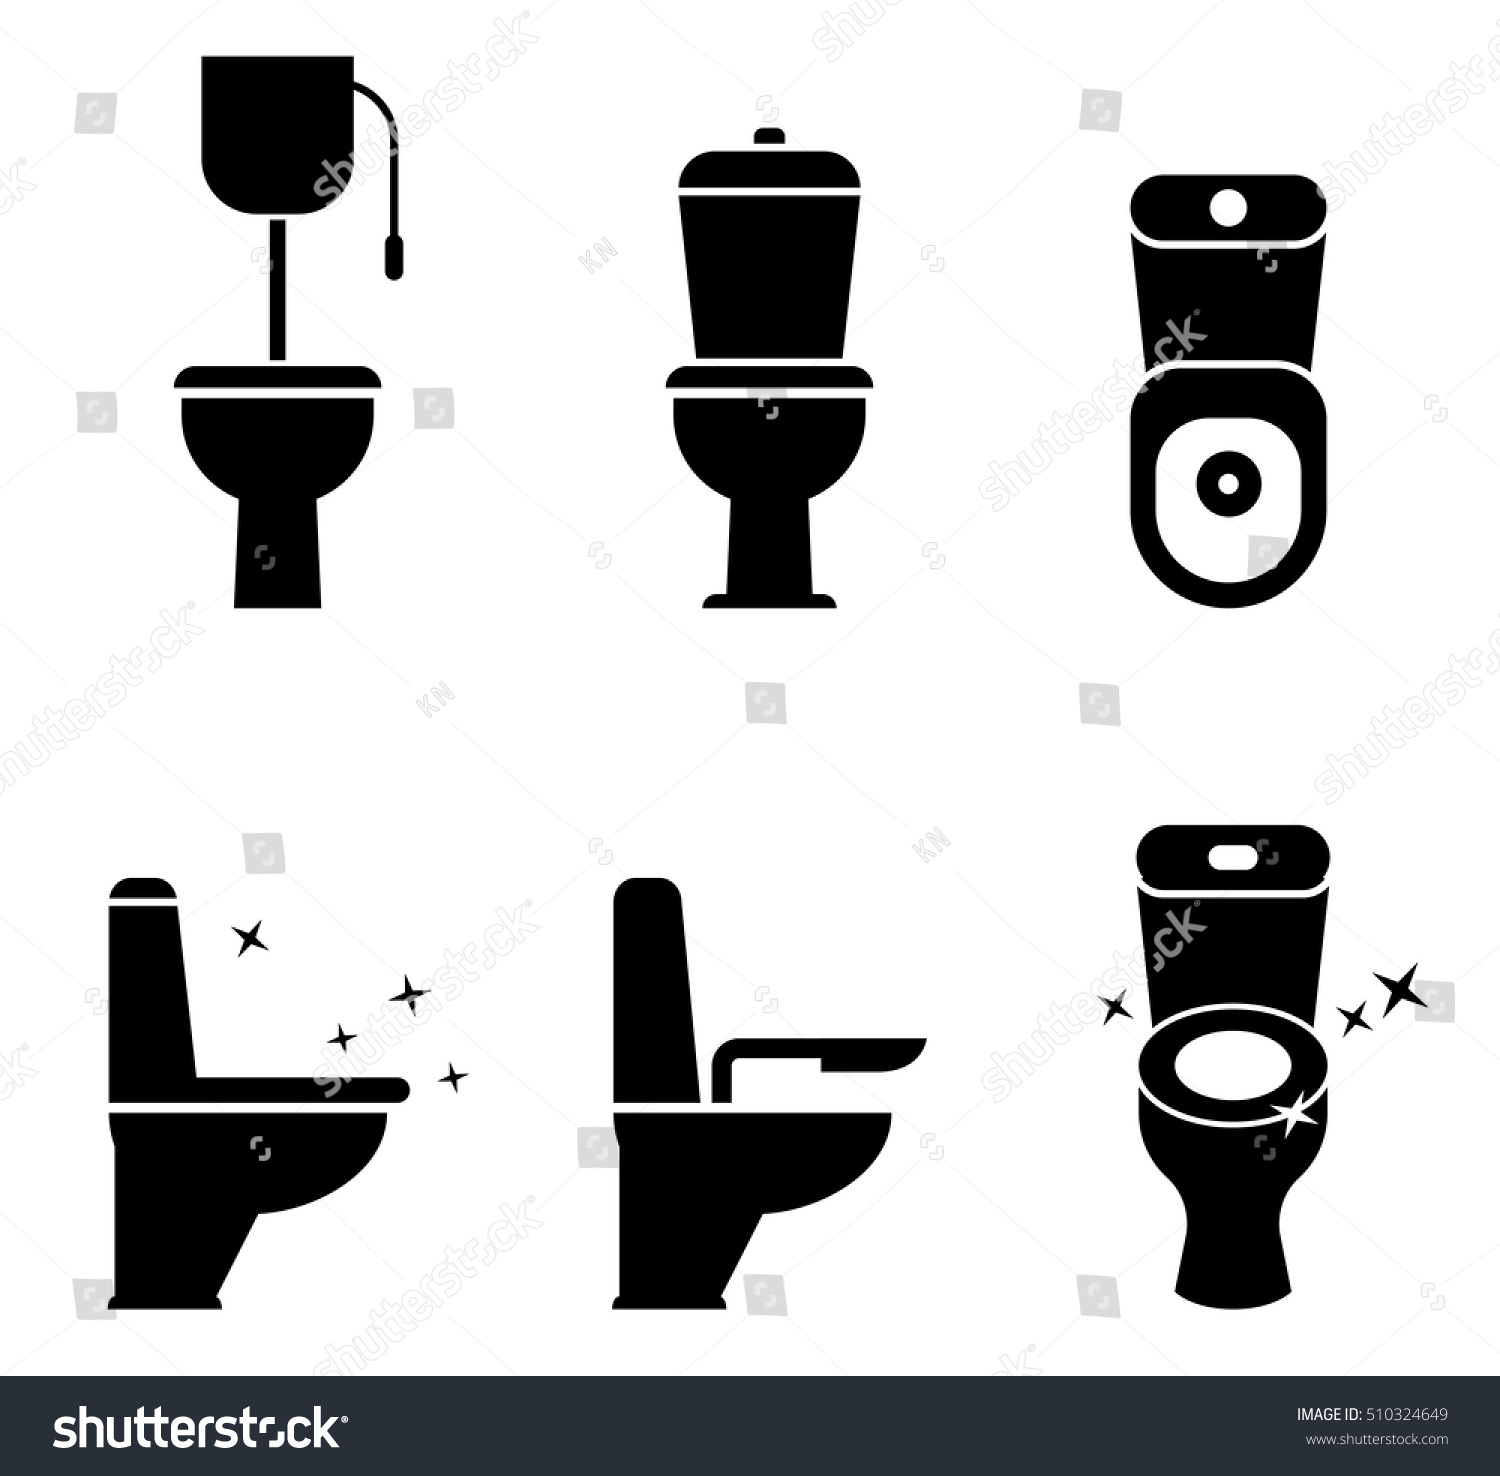 Toilet signs vector set stock images image 36323784 - Toilet Icons Set Vector Set Symbols Stock Vector 510324649 Stock Vector Toilet Icons Set Vector Set